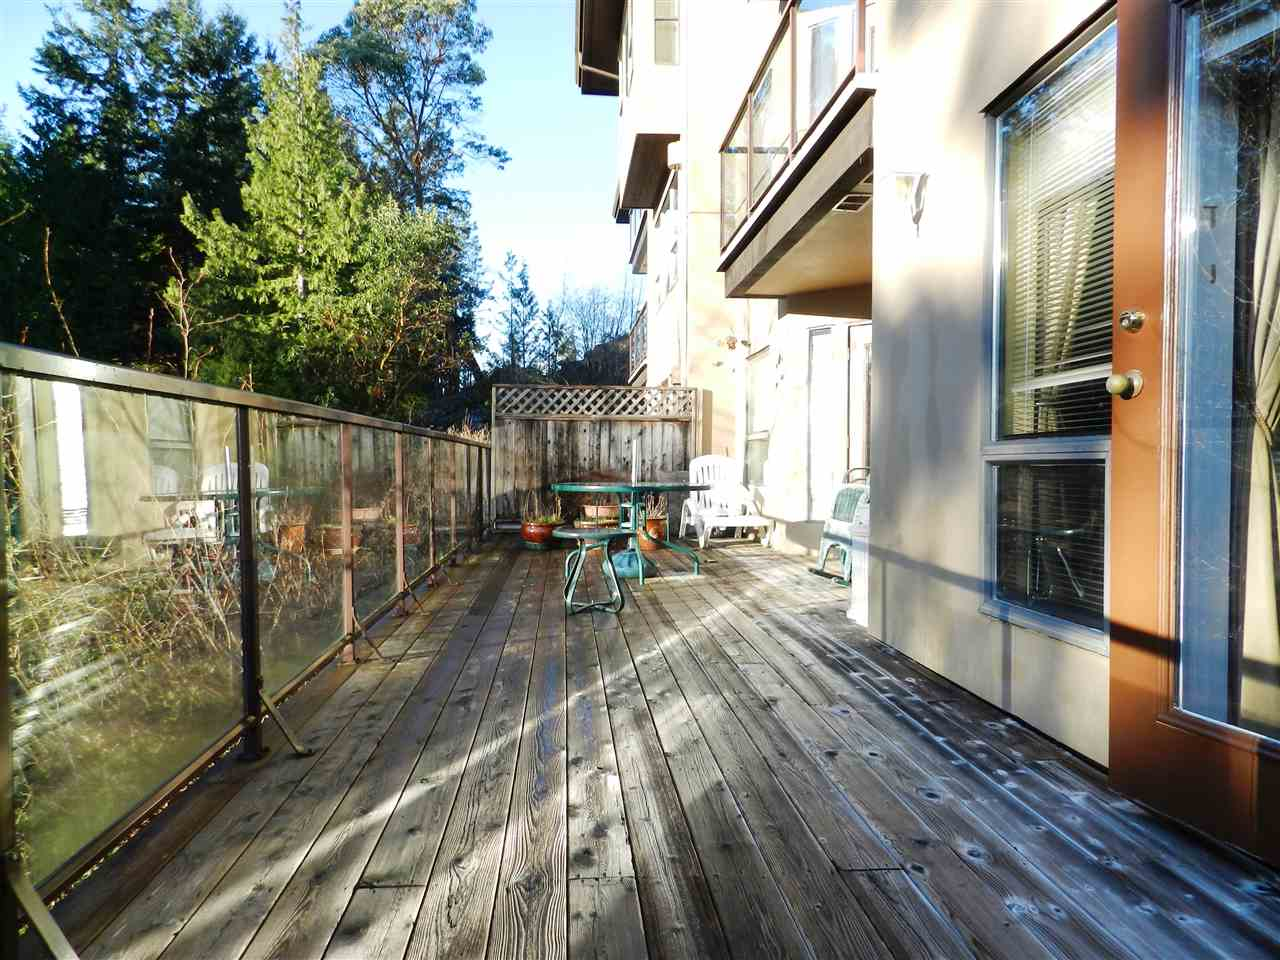 Photo 15: 207 5855 COWRIE STREET STREET in Sechelt: Sechelt District Condo for sale (Sunshine Coast)  : MLS(r) # R2021103